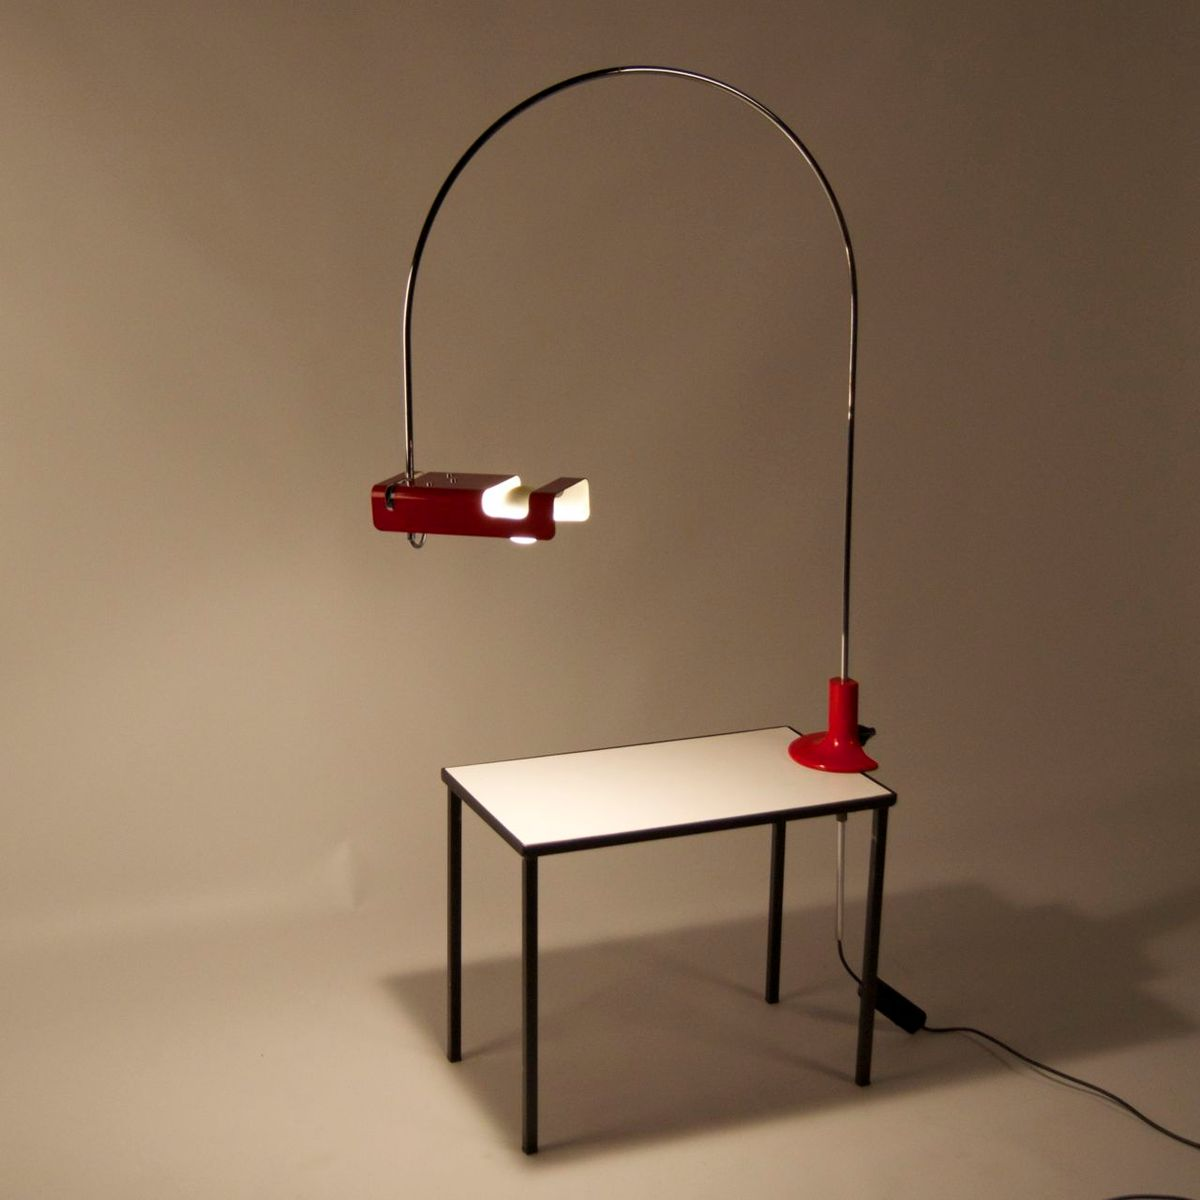 293 spider lamp by joe colombo for oluce 1966 for sale at pamono. Black Bedroom Furniture Sets. Home Design Ideas